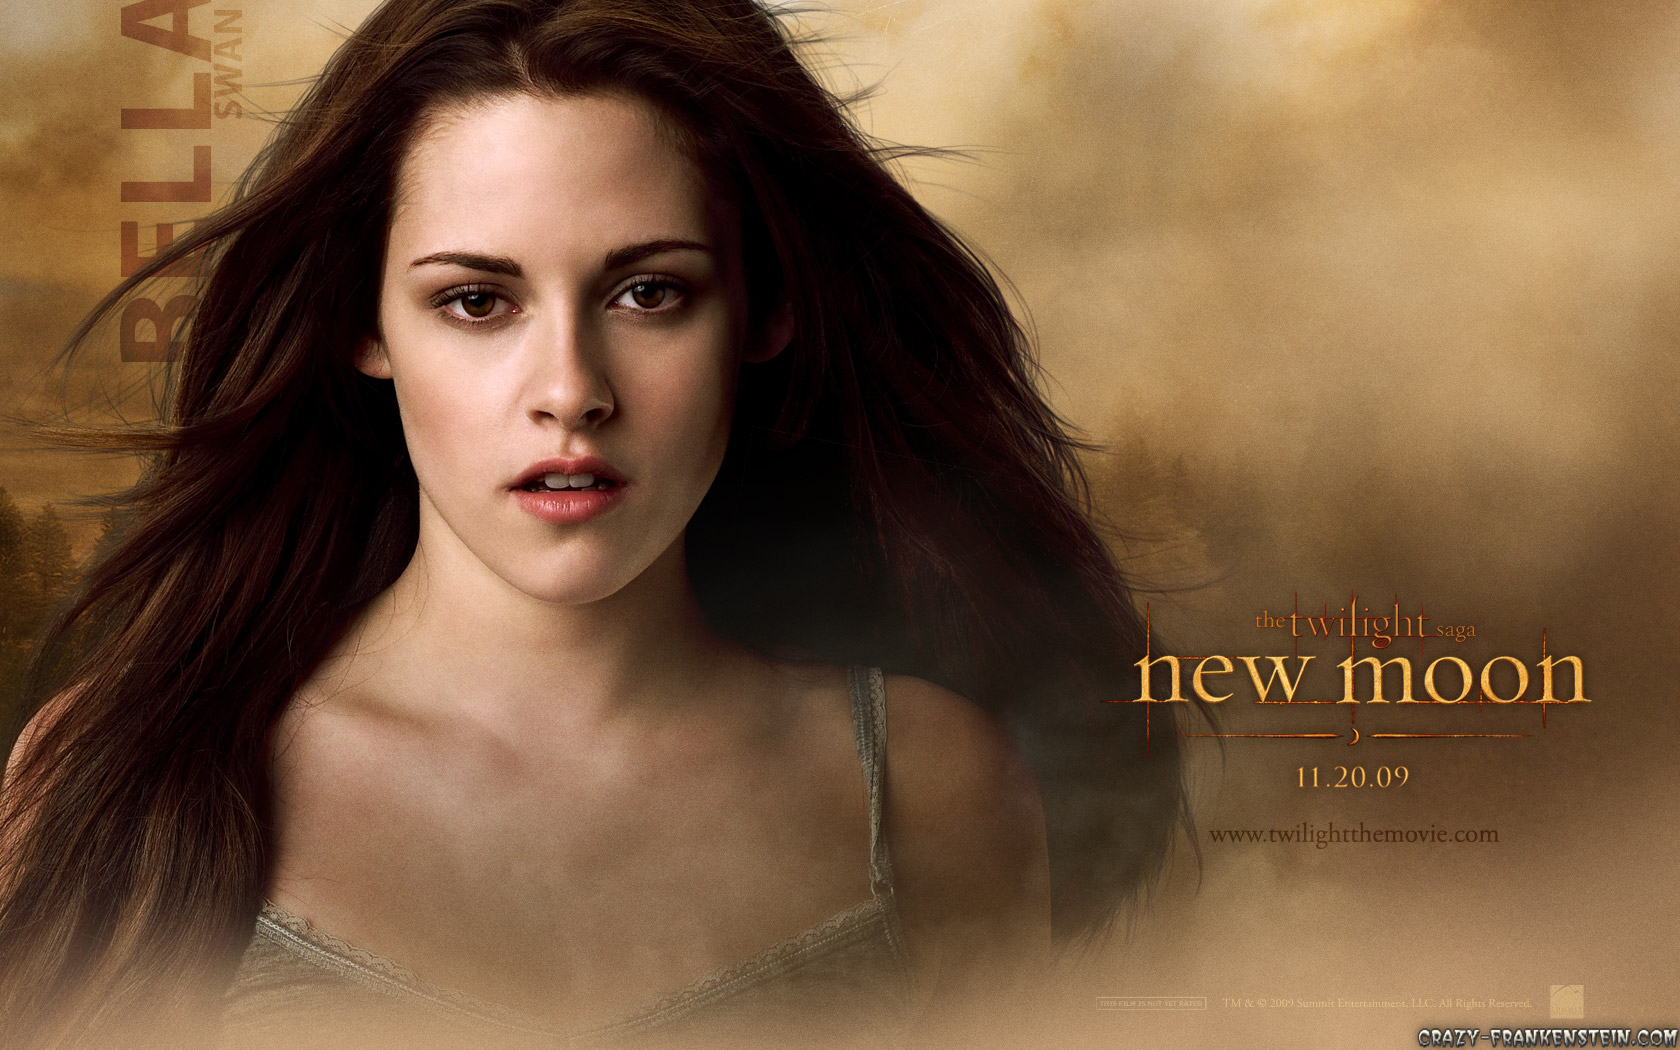 Bella in Twilight New Moon Desktop Wallpaper 1680x1050